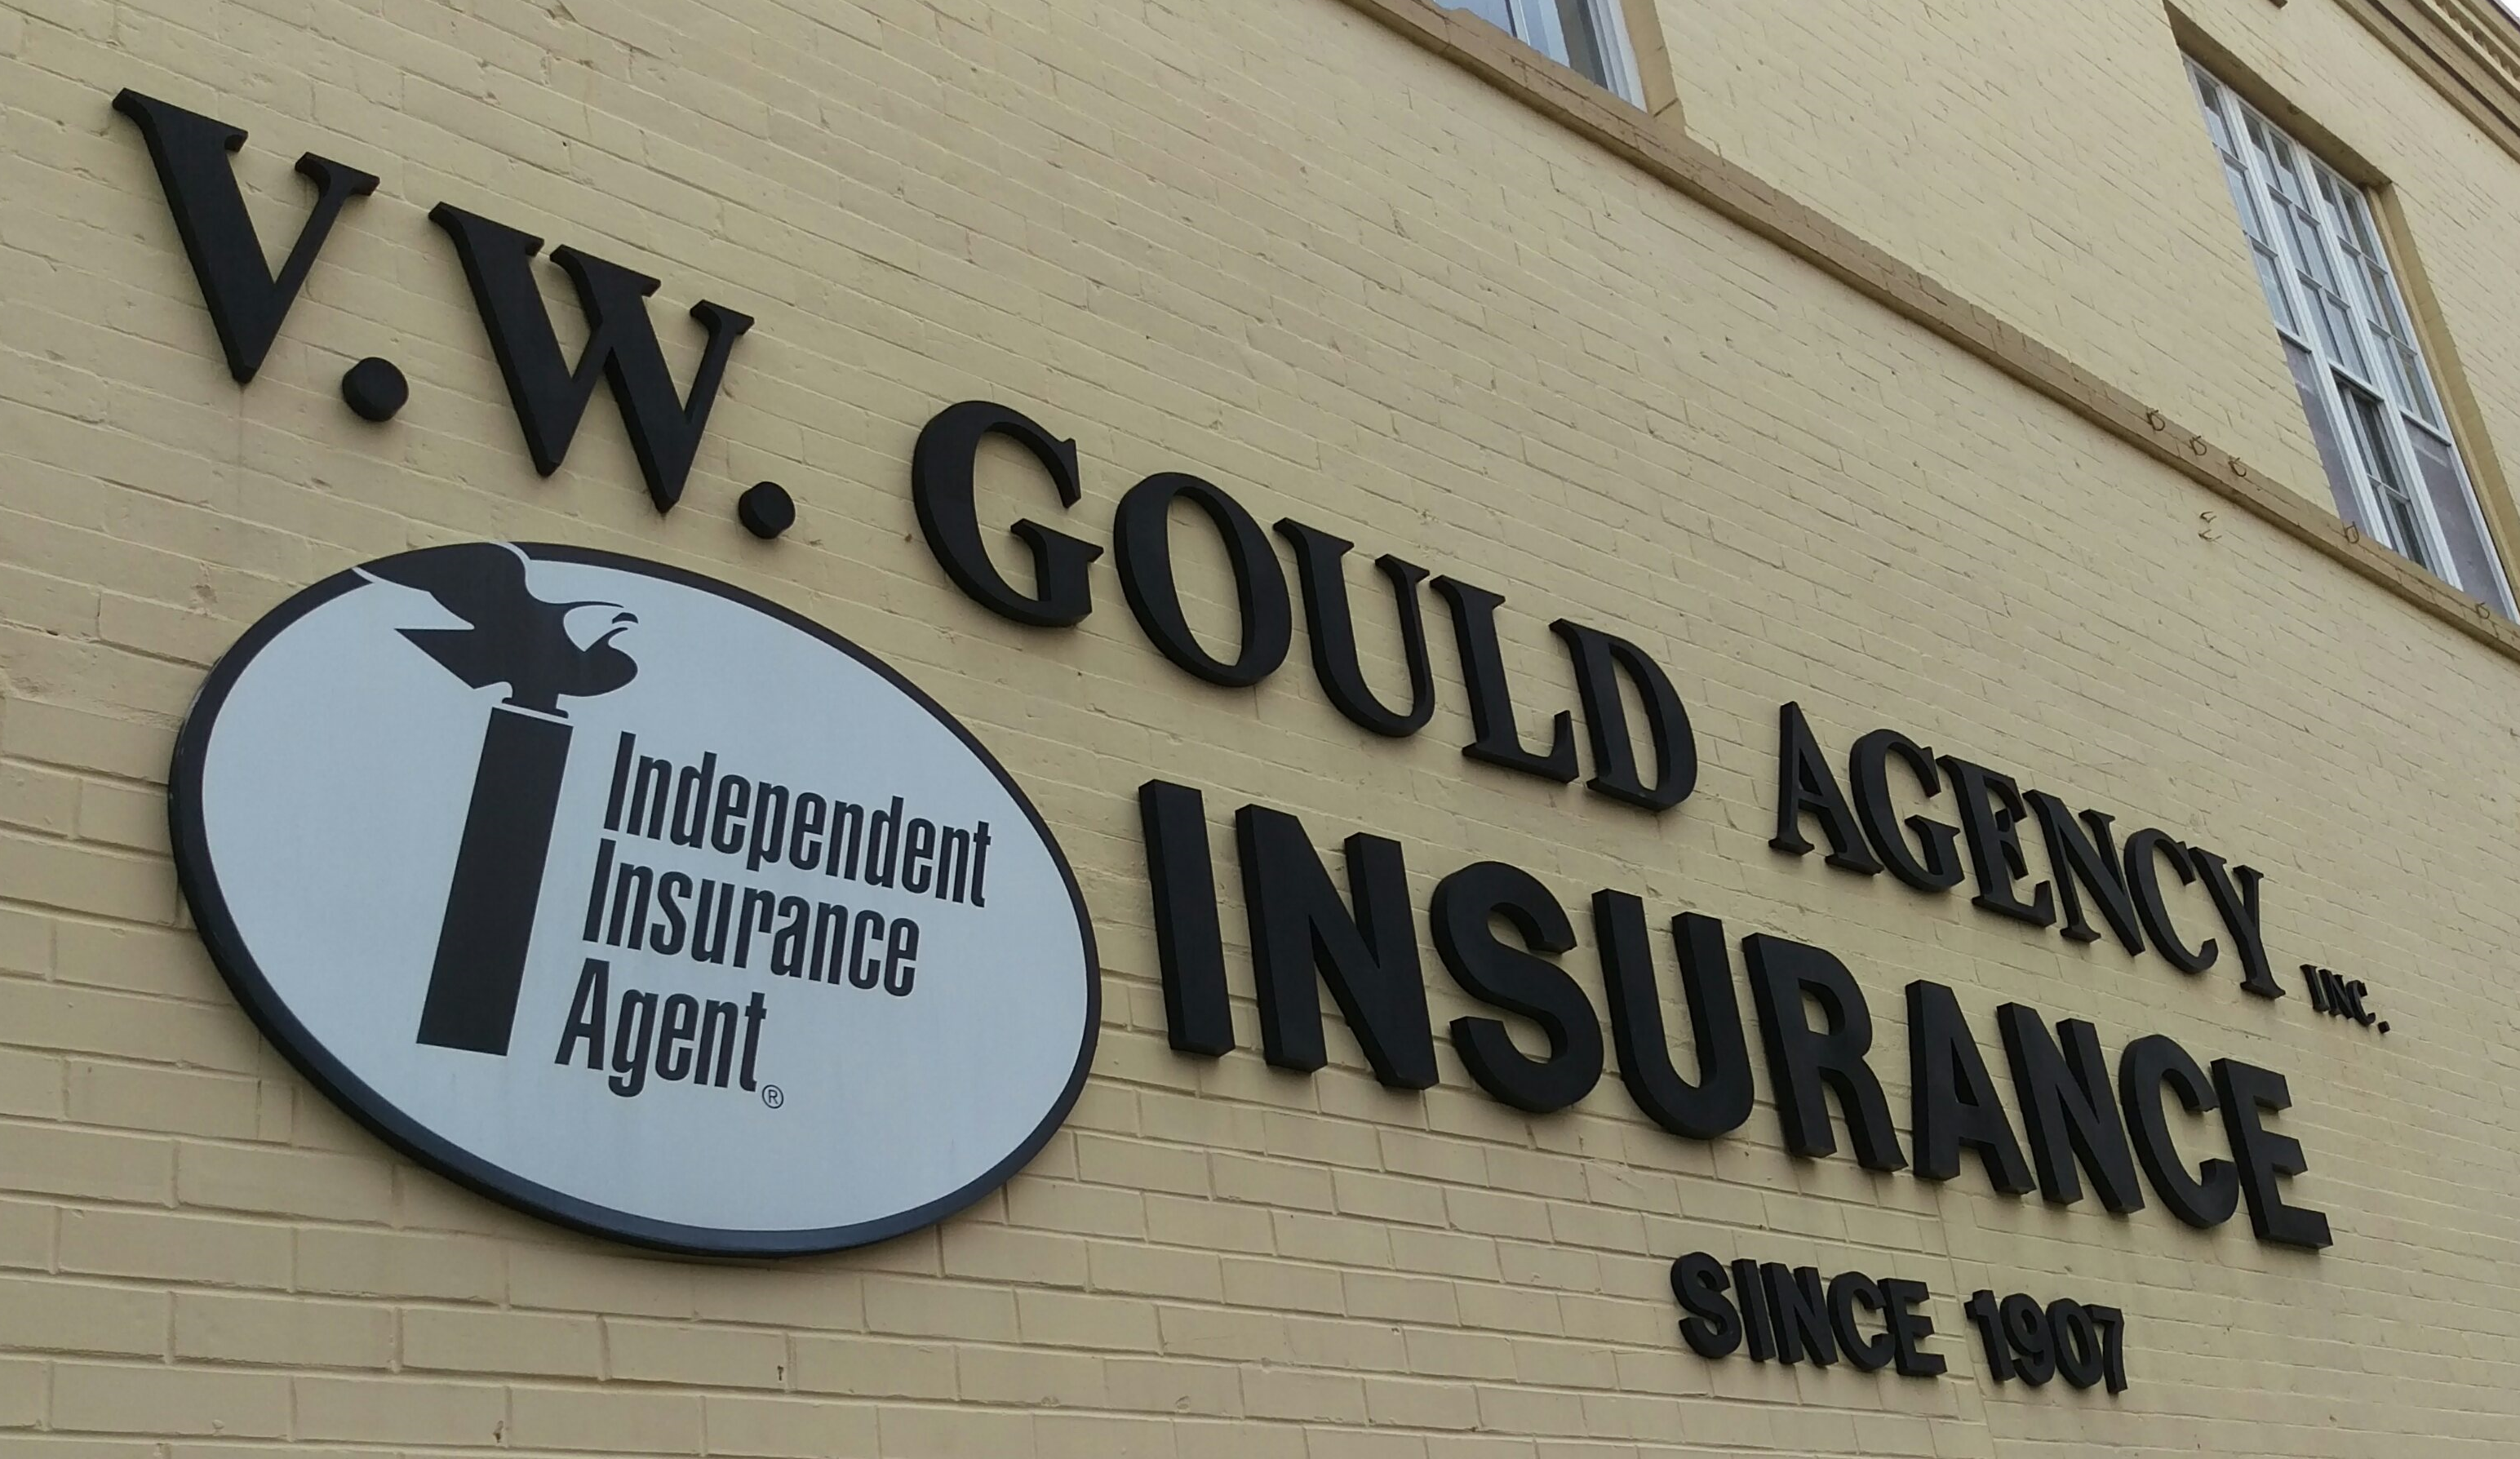 Gould Insurance Deland Fl Gould Insurnace Business Insurance